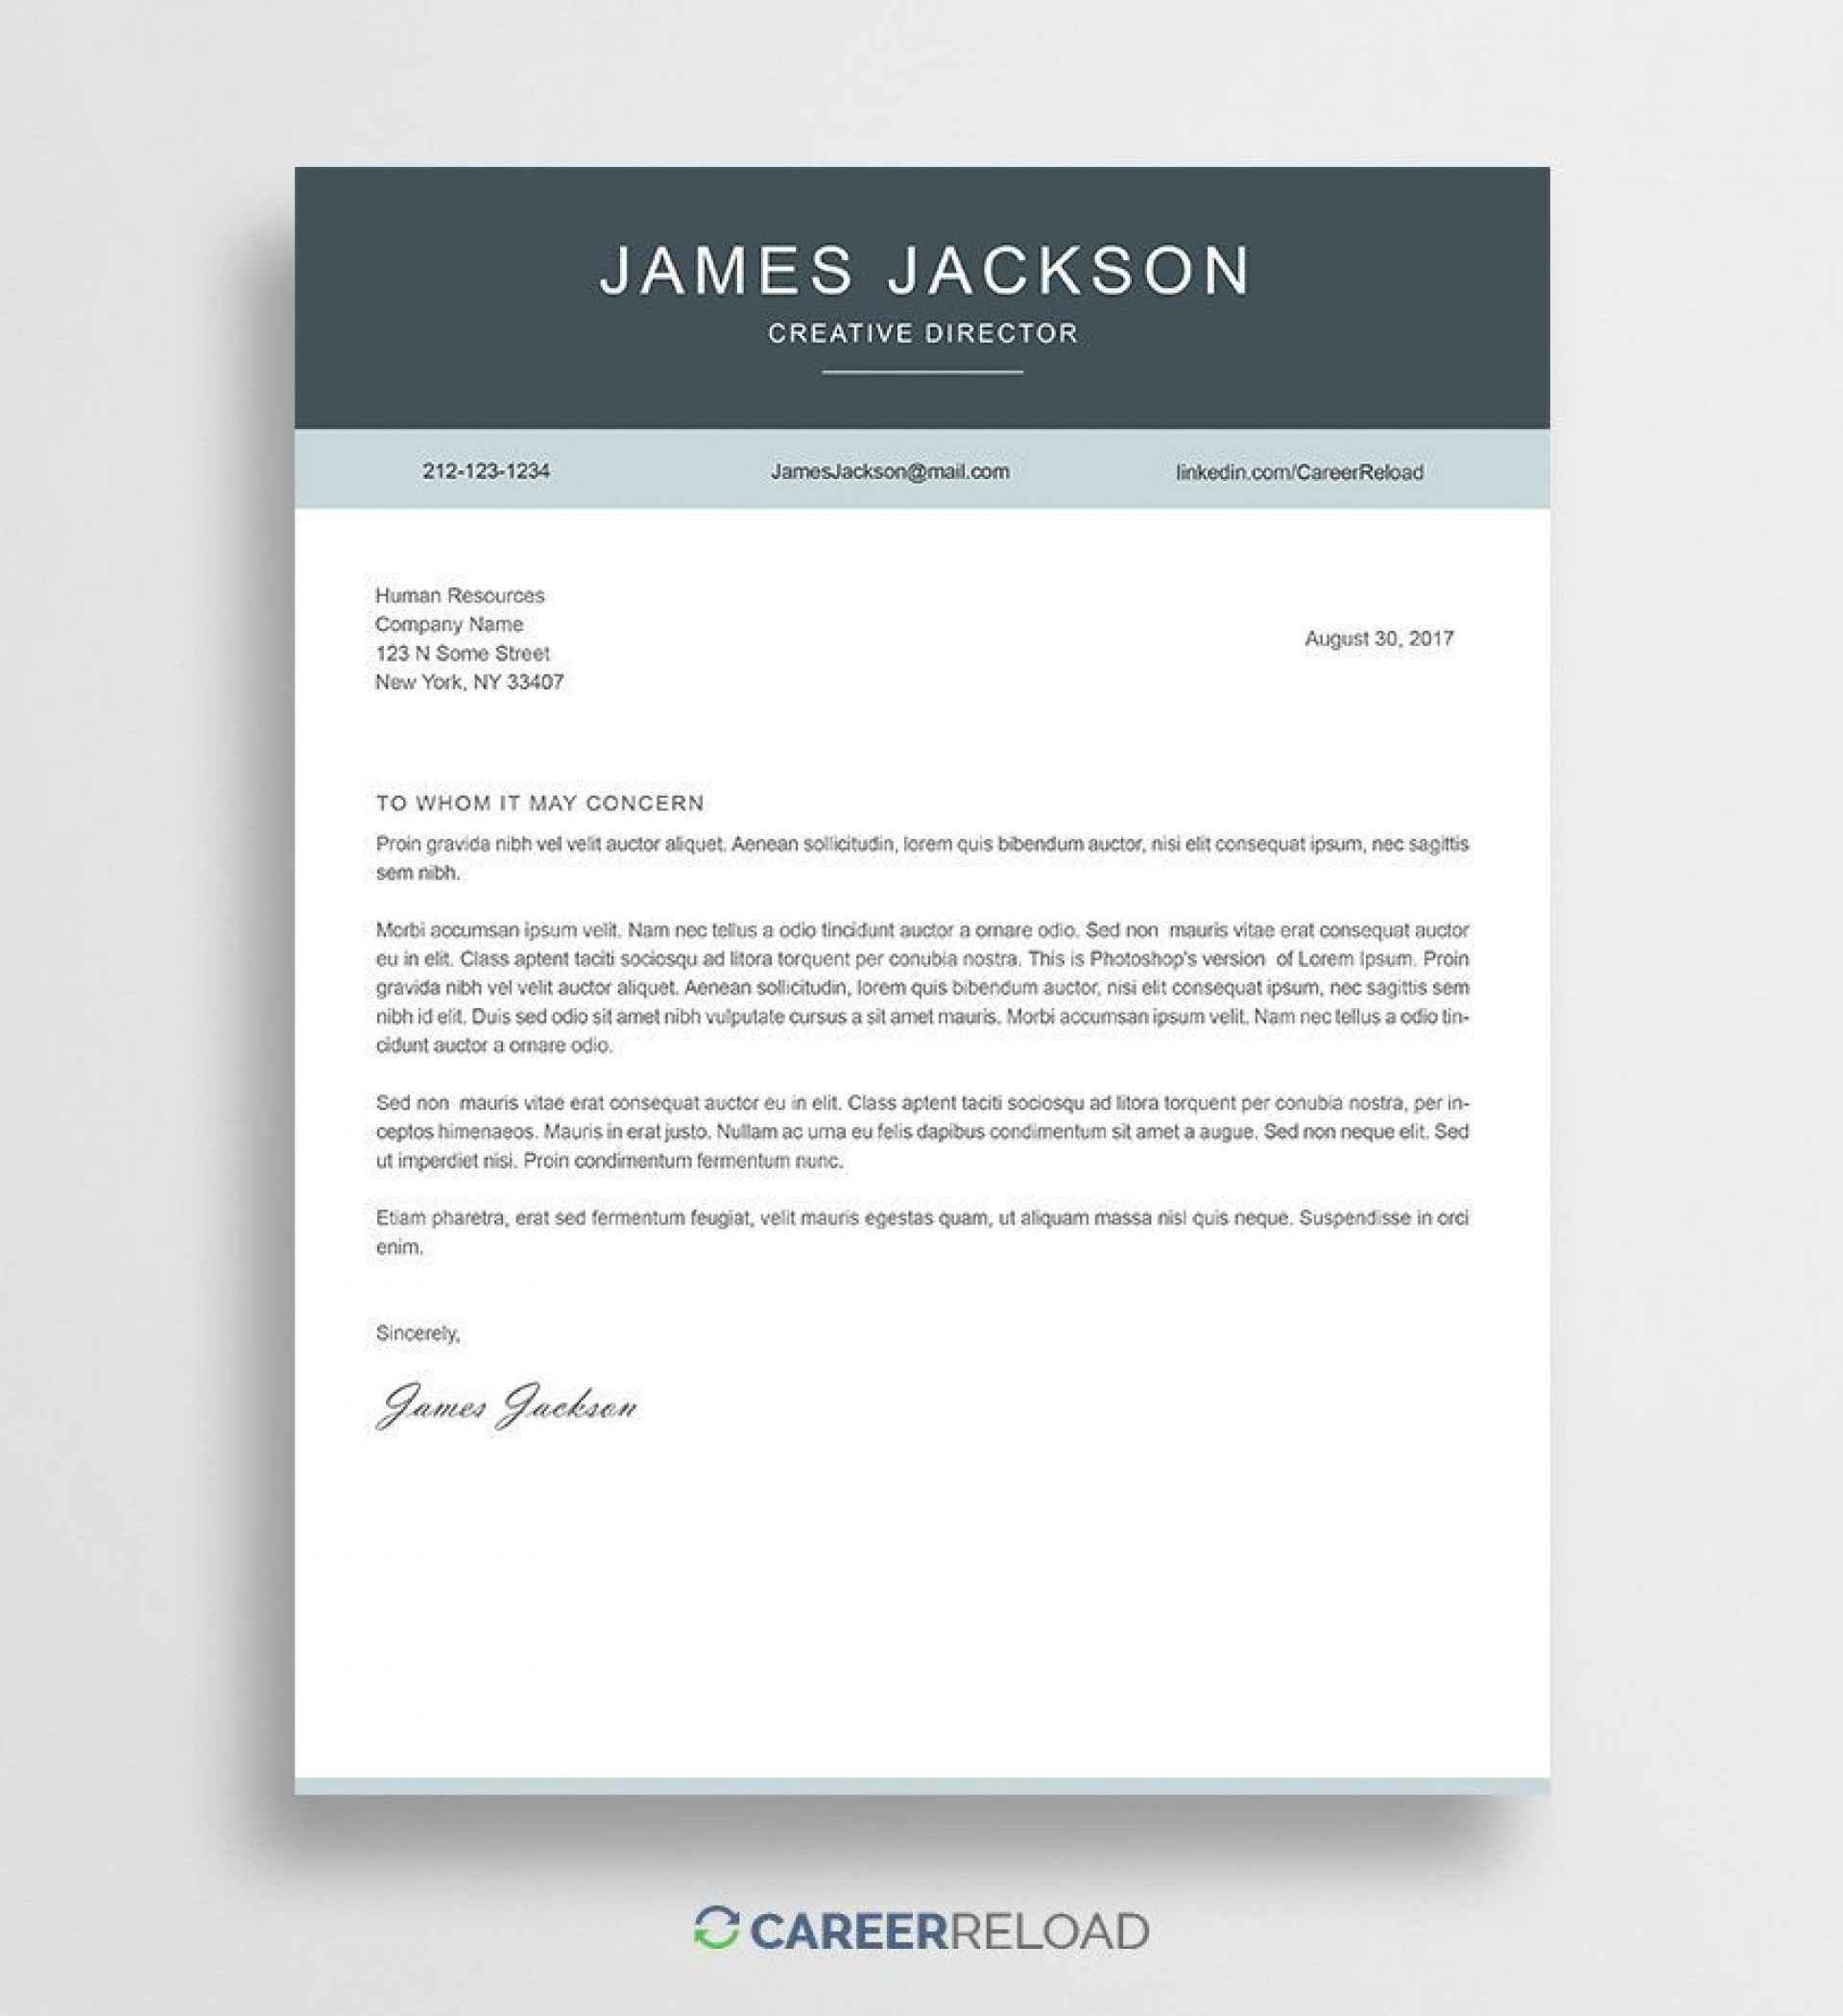 008 Archaicawful Cover Letter Template Download Mac Image  Free1920